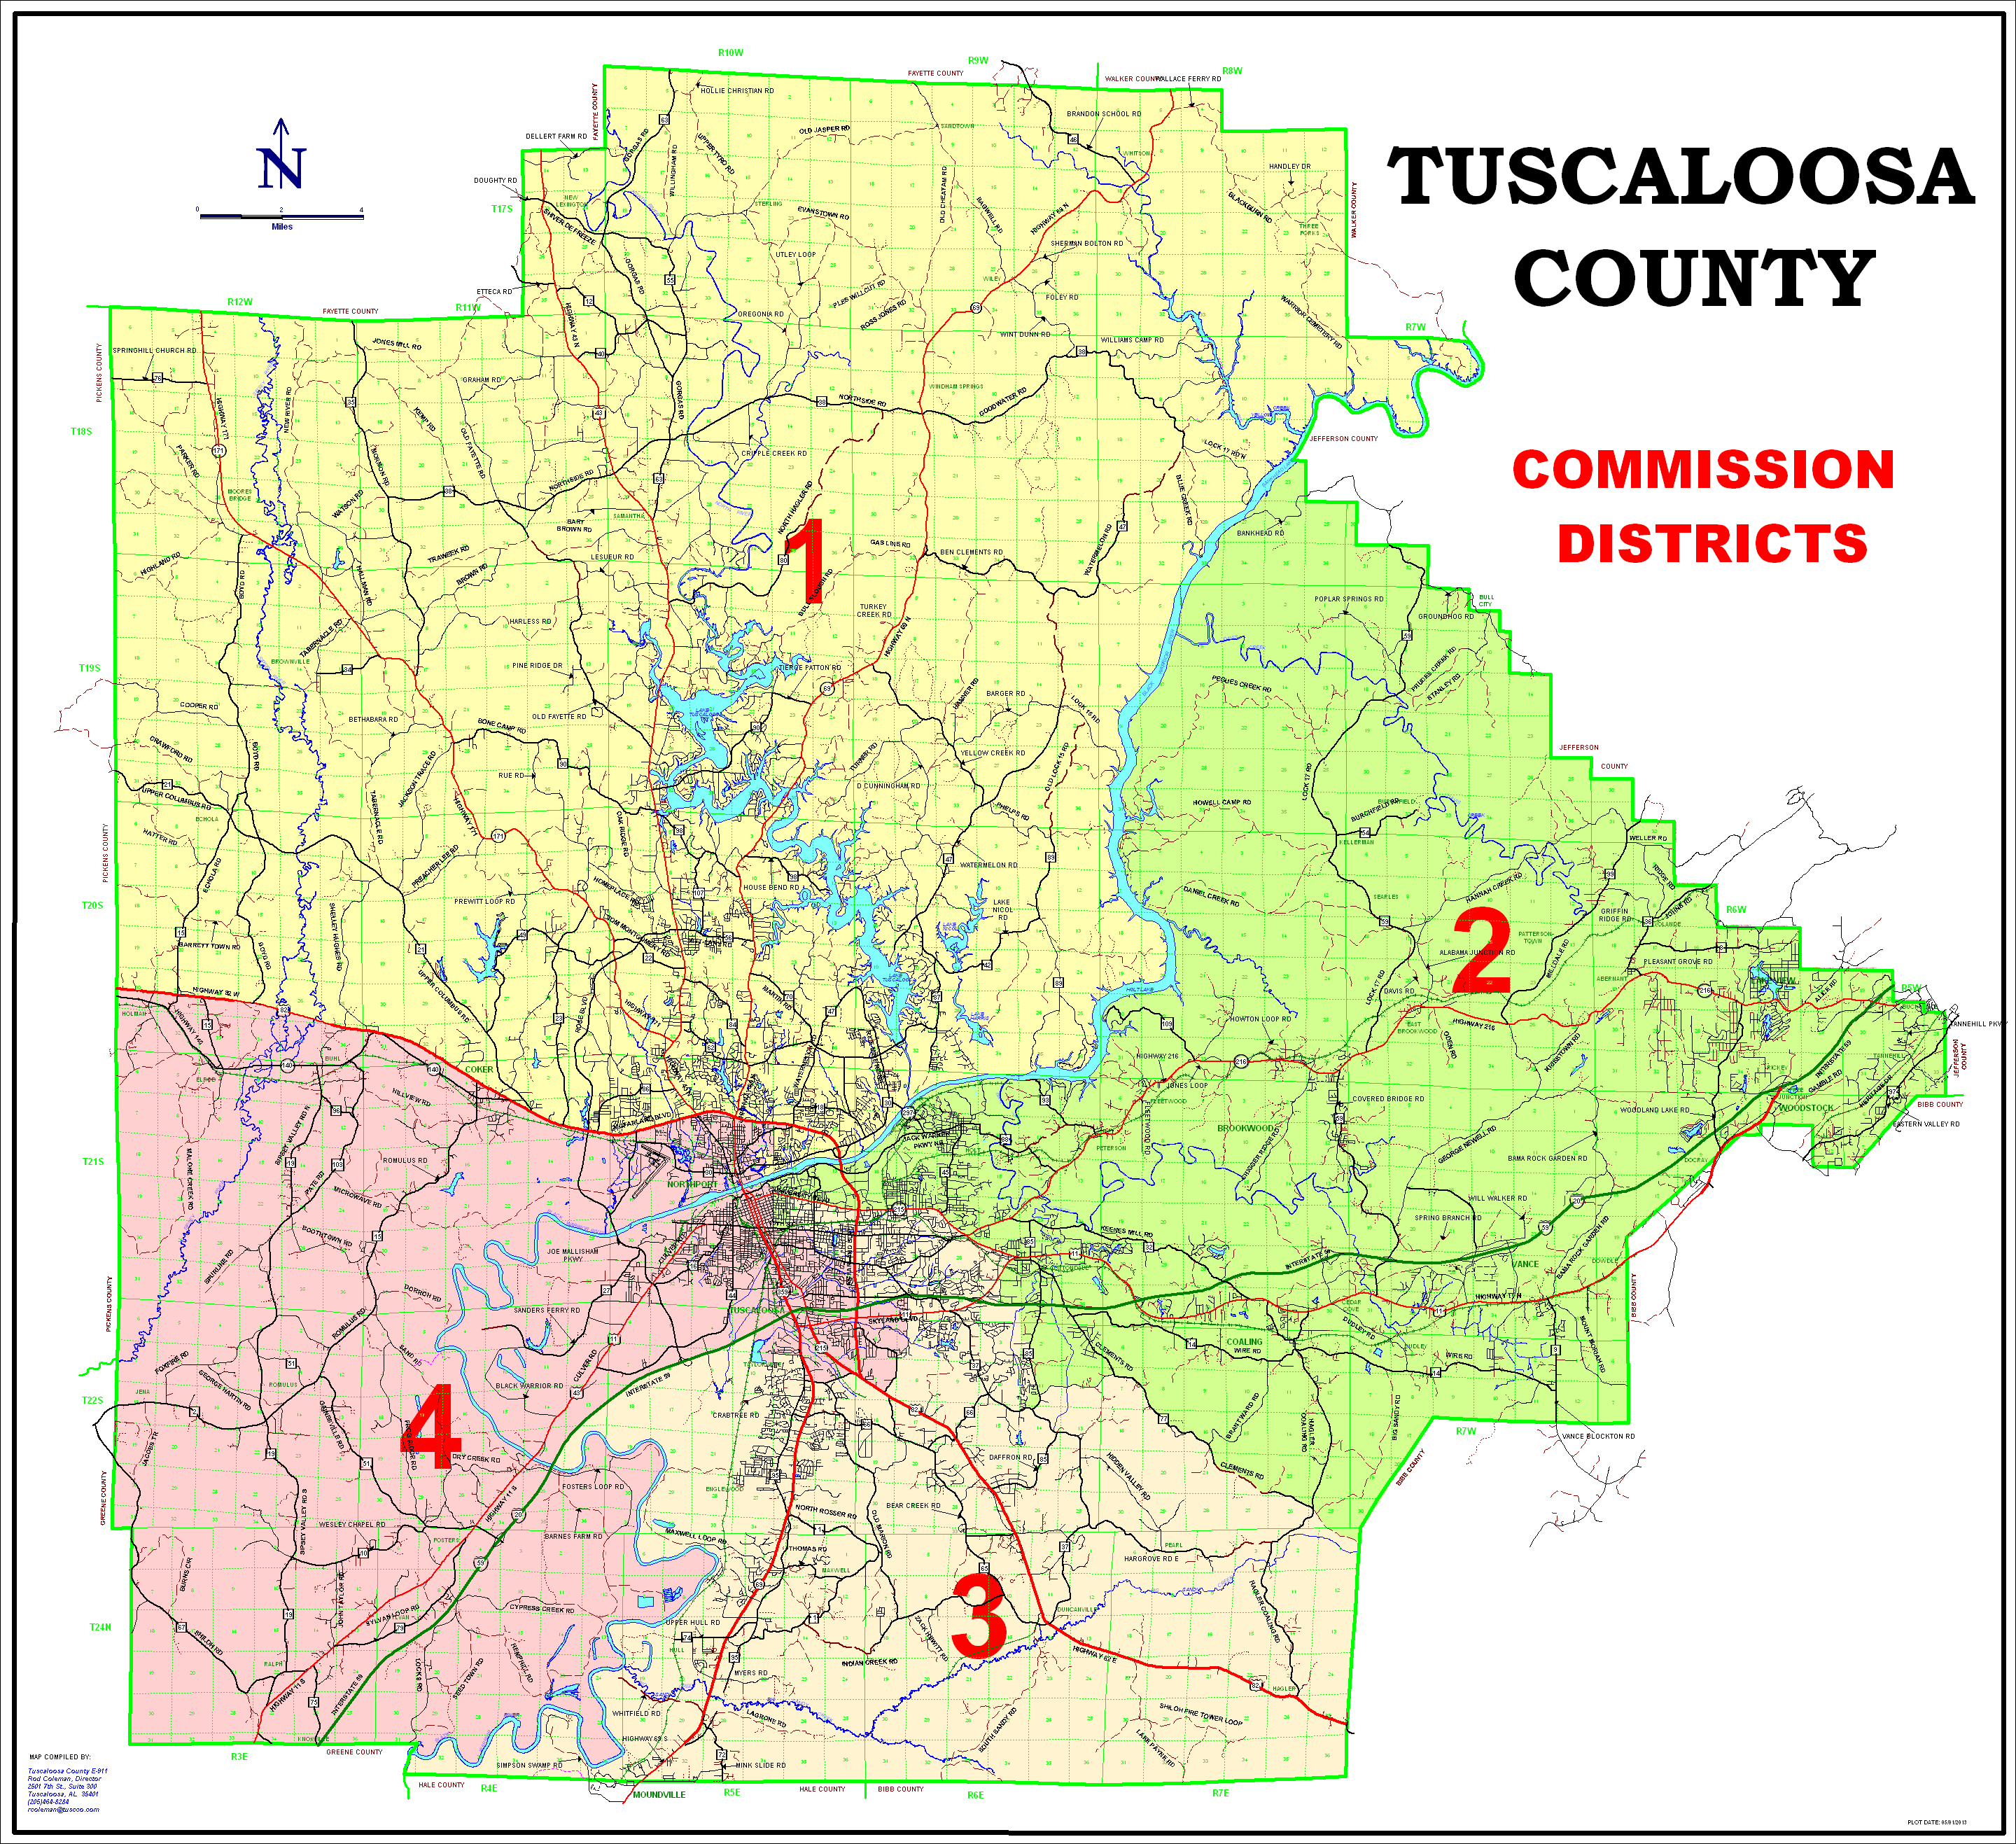 County Commission District Maps - Tuscaloosa County Alabama on map of airports in alabama, map of rivers in alabama, map of city in alabama, map of municipalities in alabama, map of climate in alabama, map of cities and towns in alabama, map of hospitals in alabama,